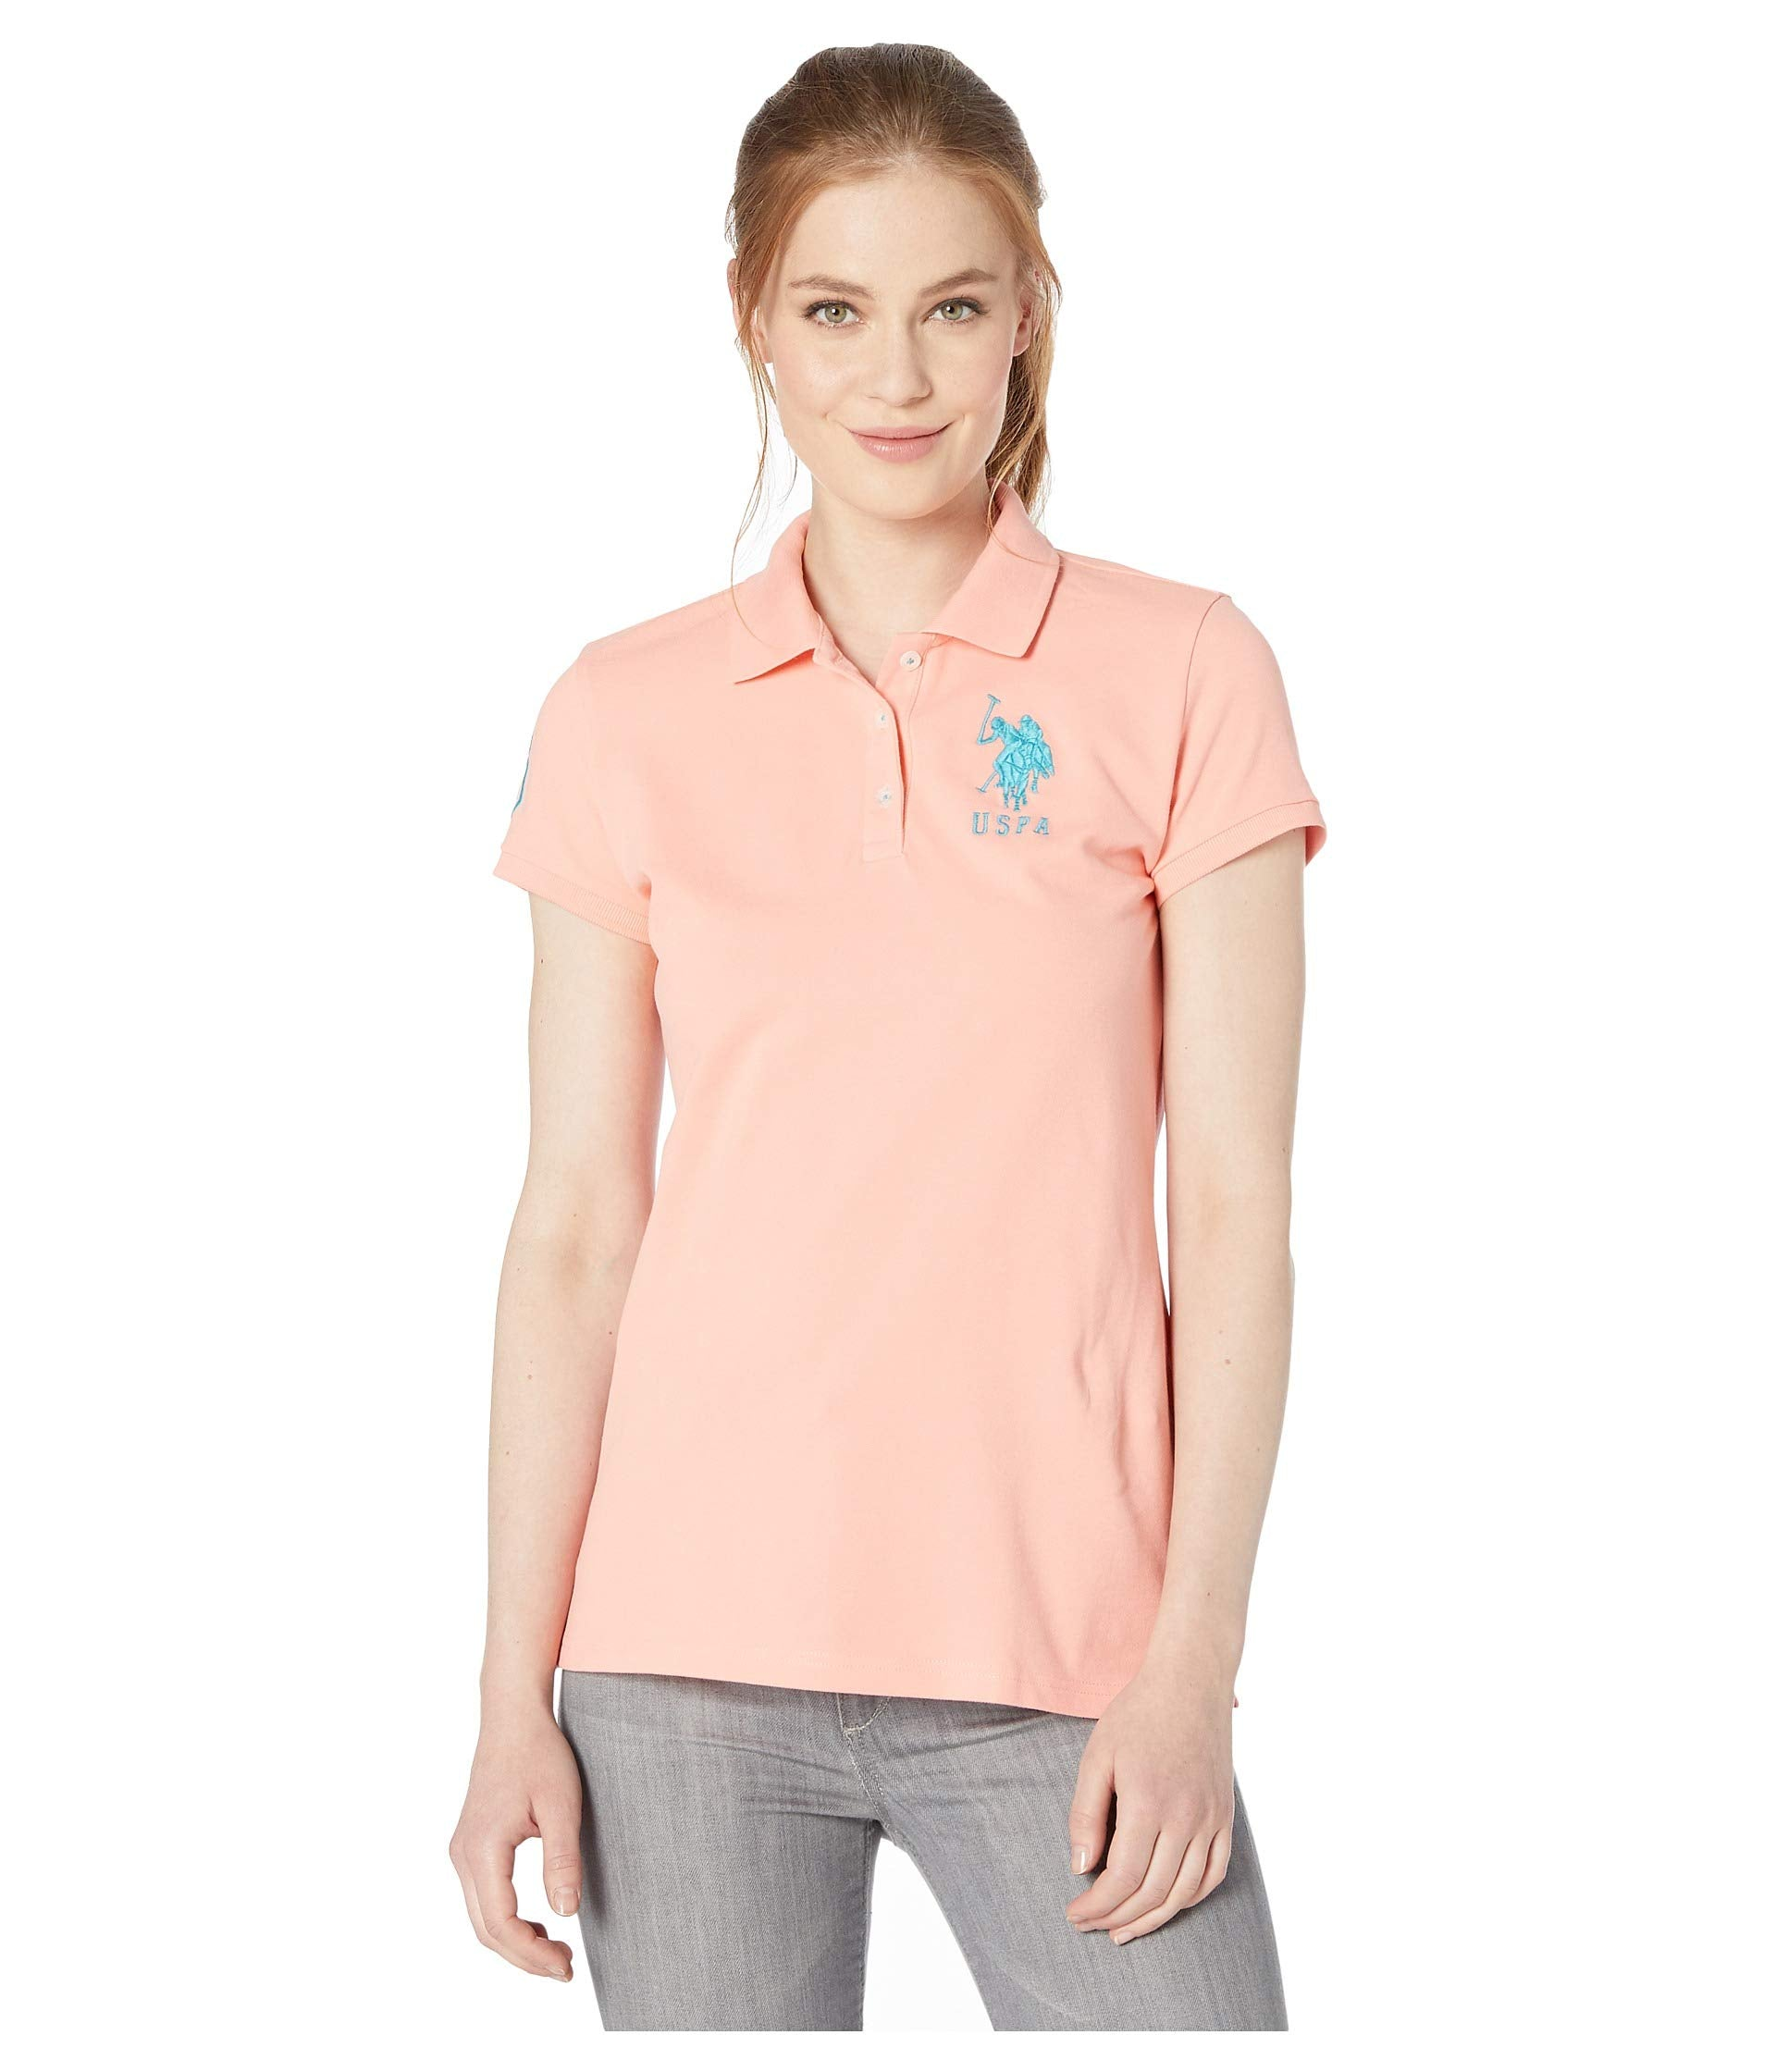 Neon Logos Short Sleeve Polo Shirt